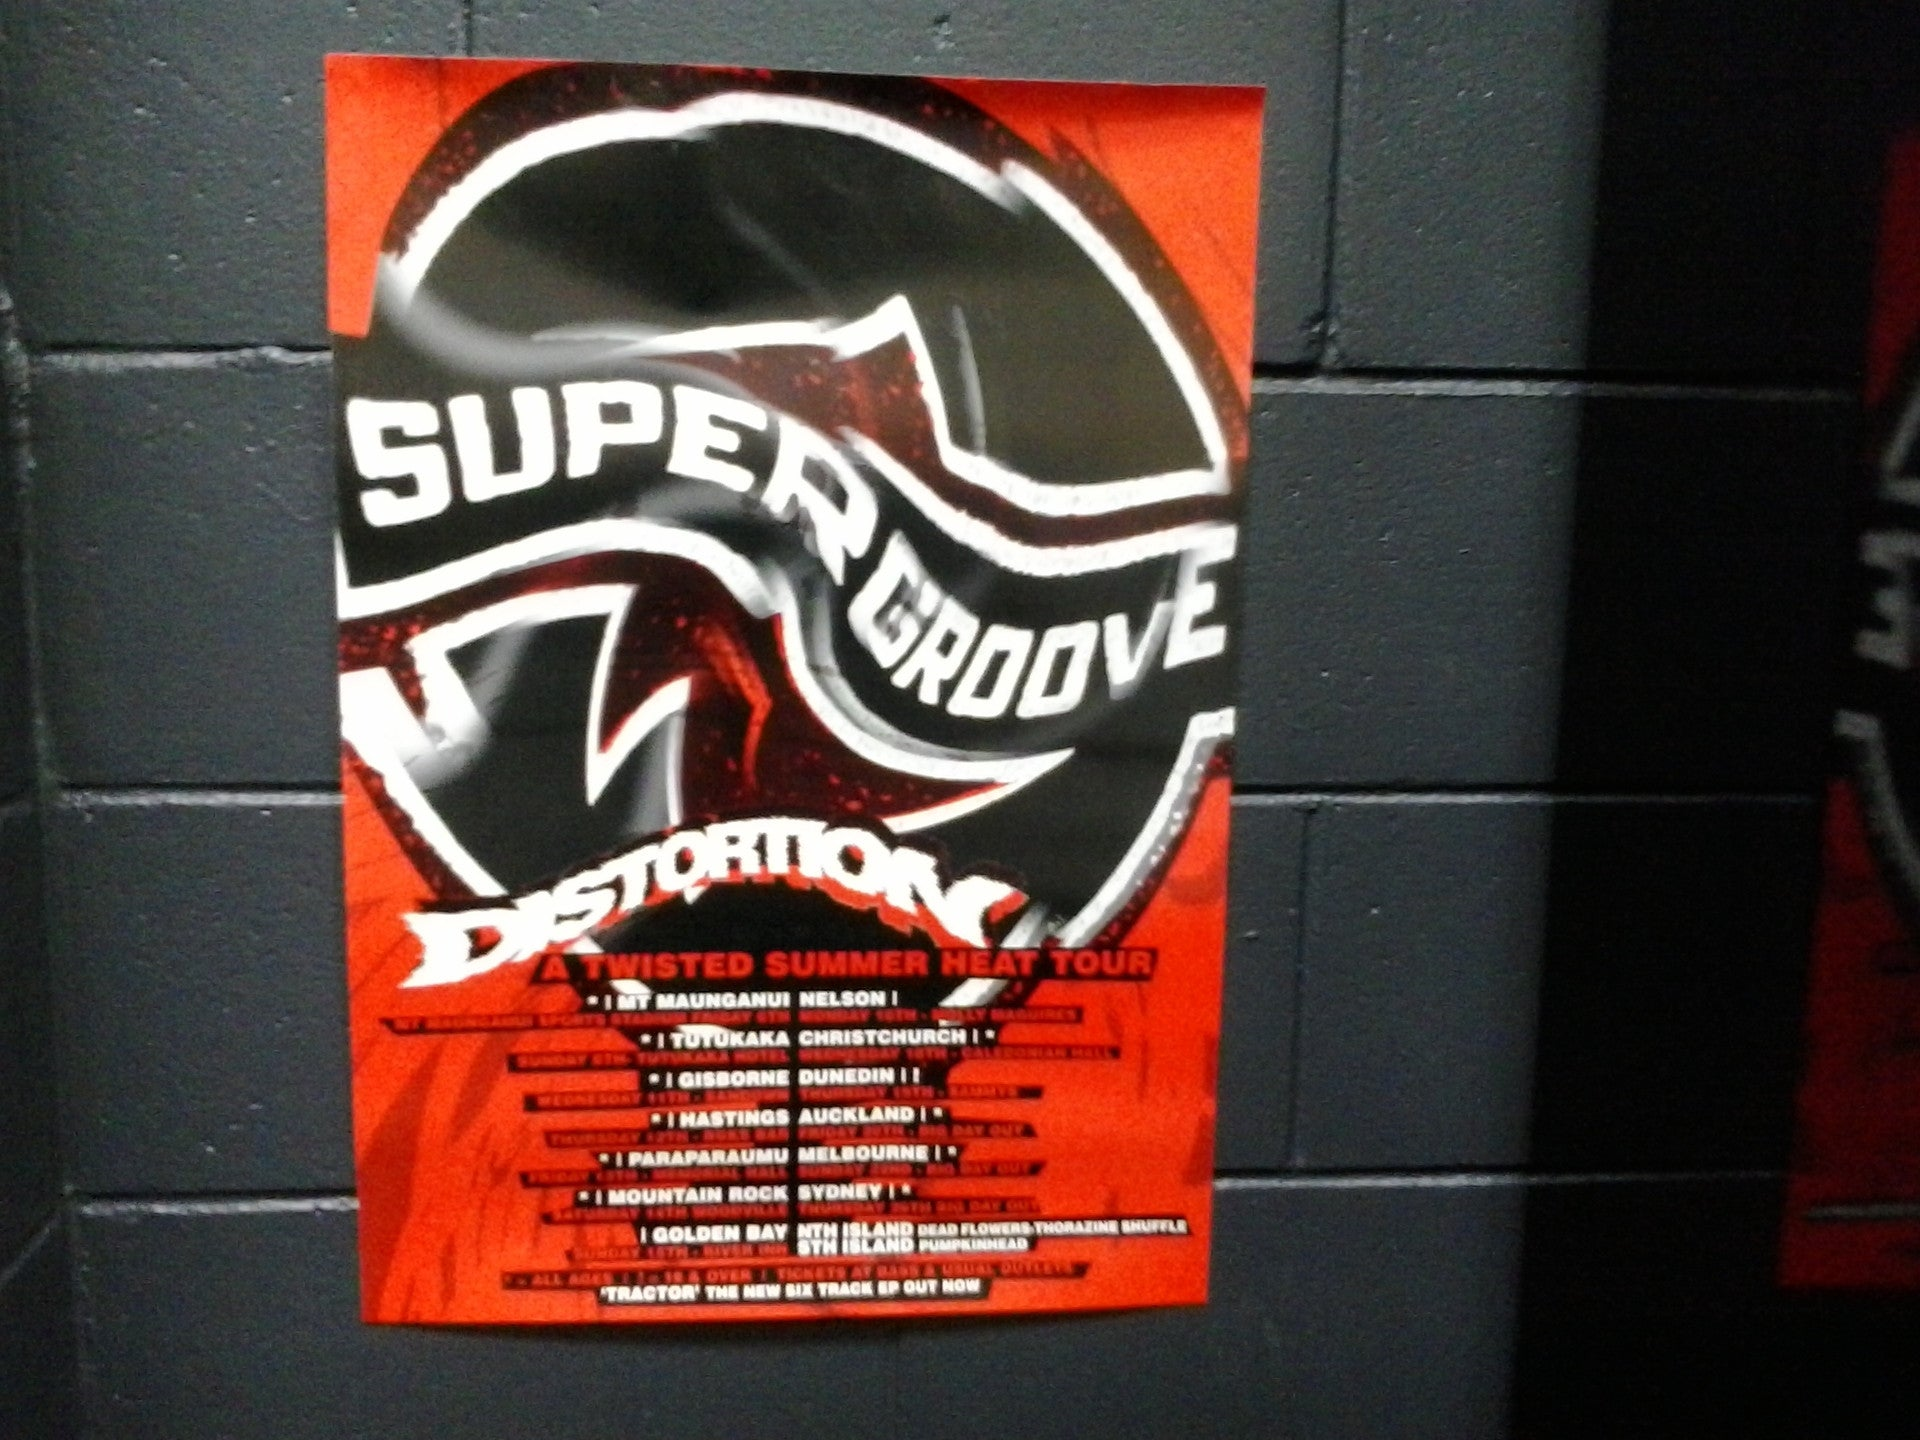 SUPERGROOVE-ORIGINAL TWISTED SUMMER HEAT TOUR POSTER